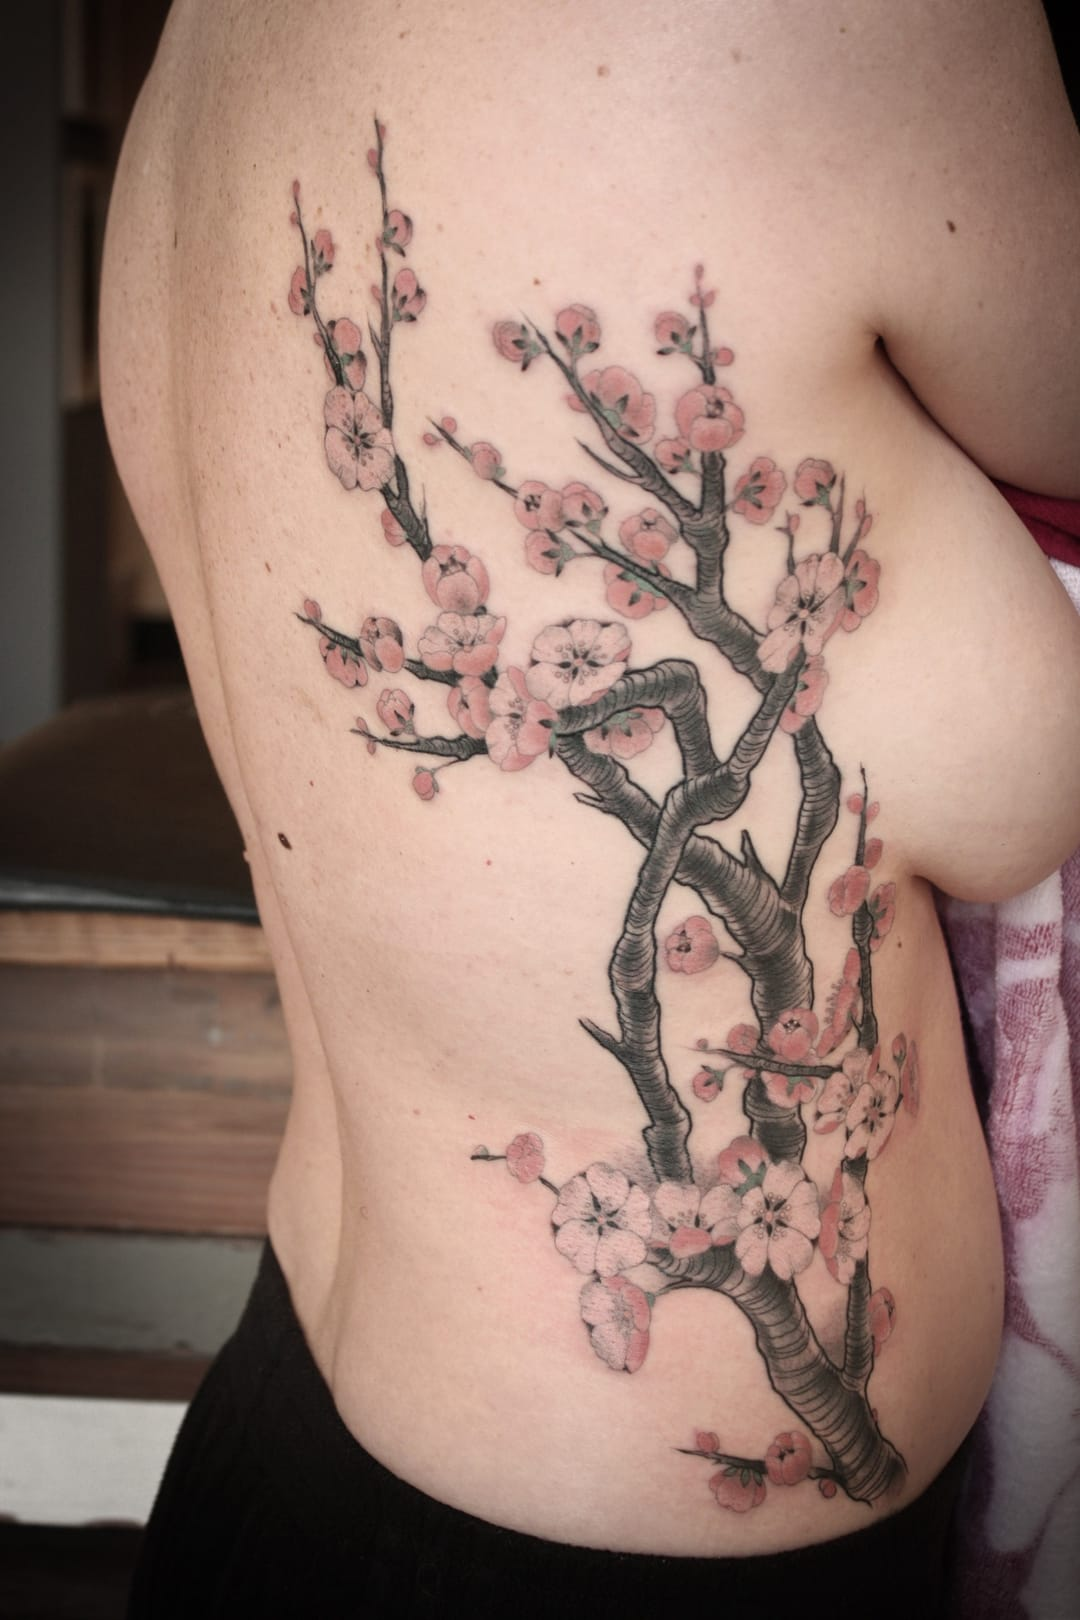 Flowers tattoo.